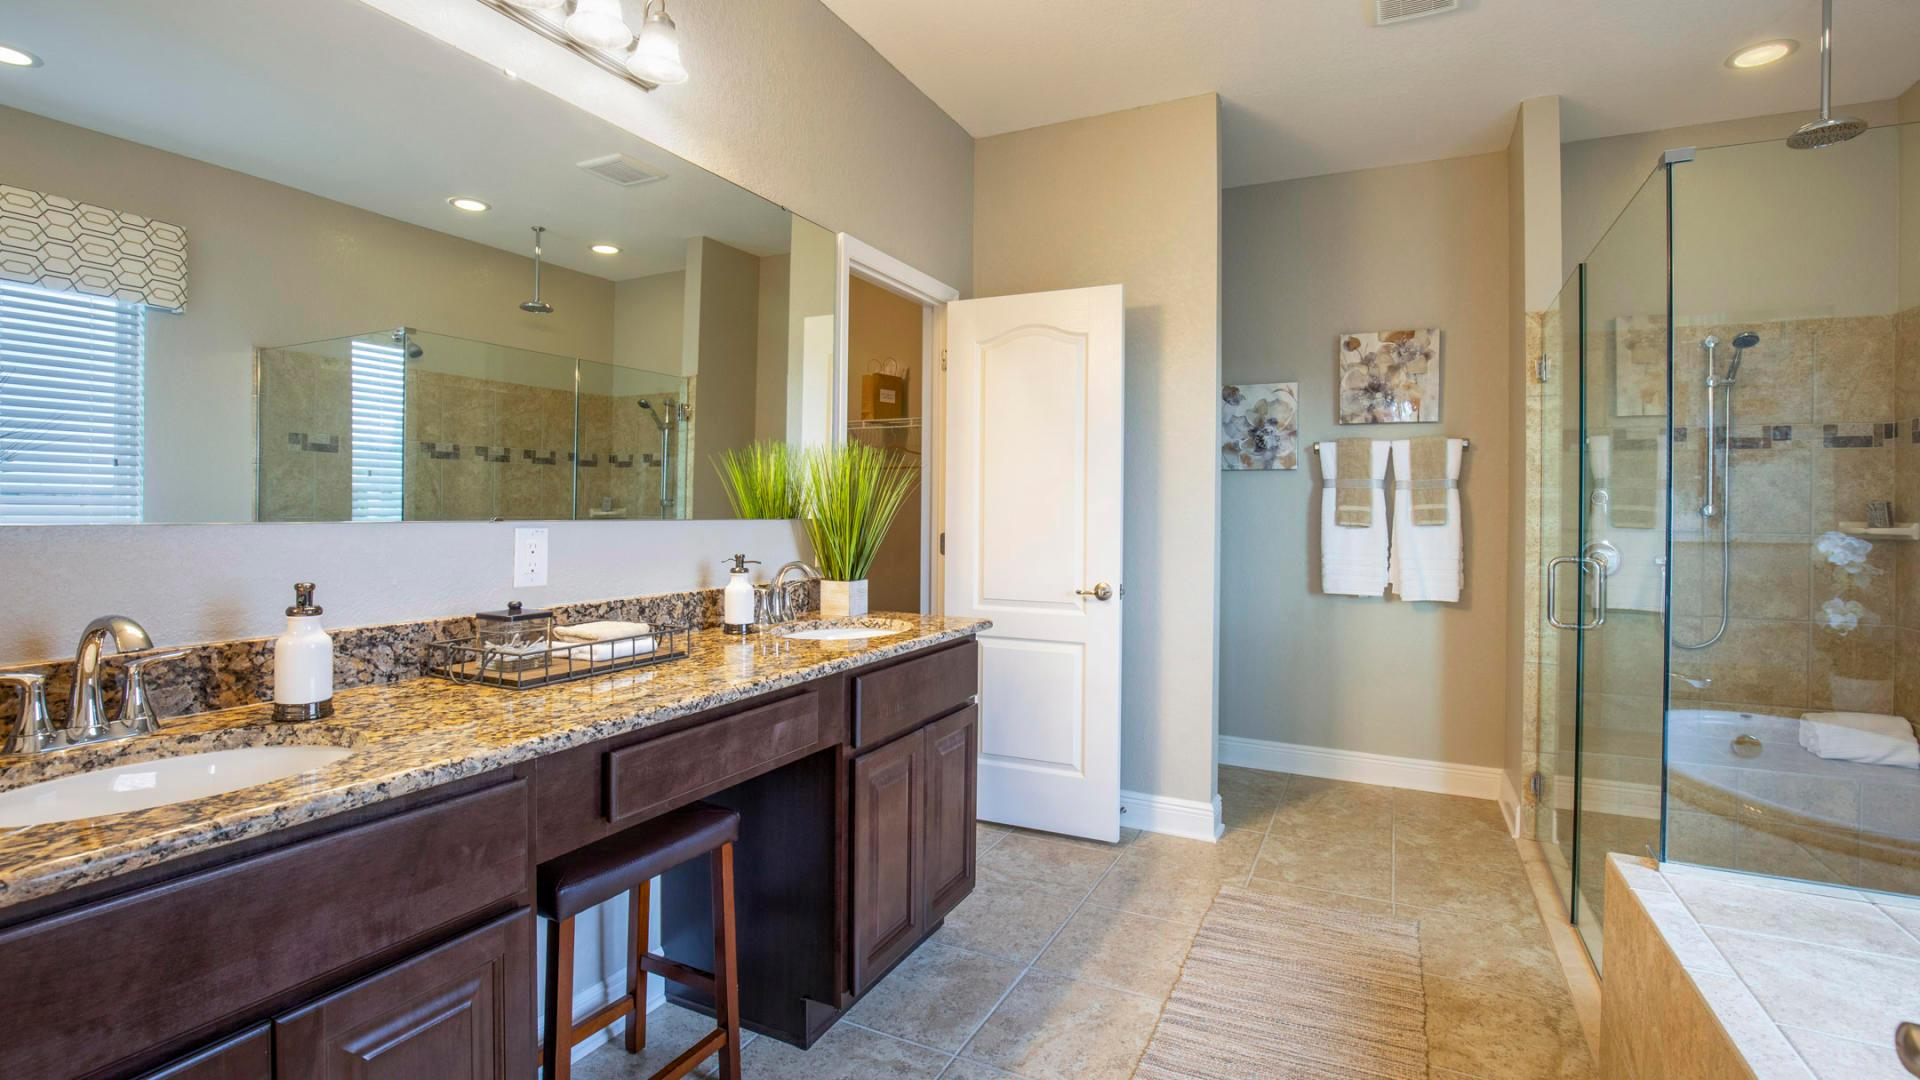 Bathroom featured in the Venice By Maronda Homes in Tampa-St. Petersburg, FL